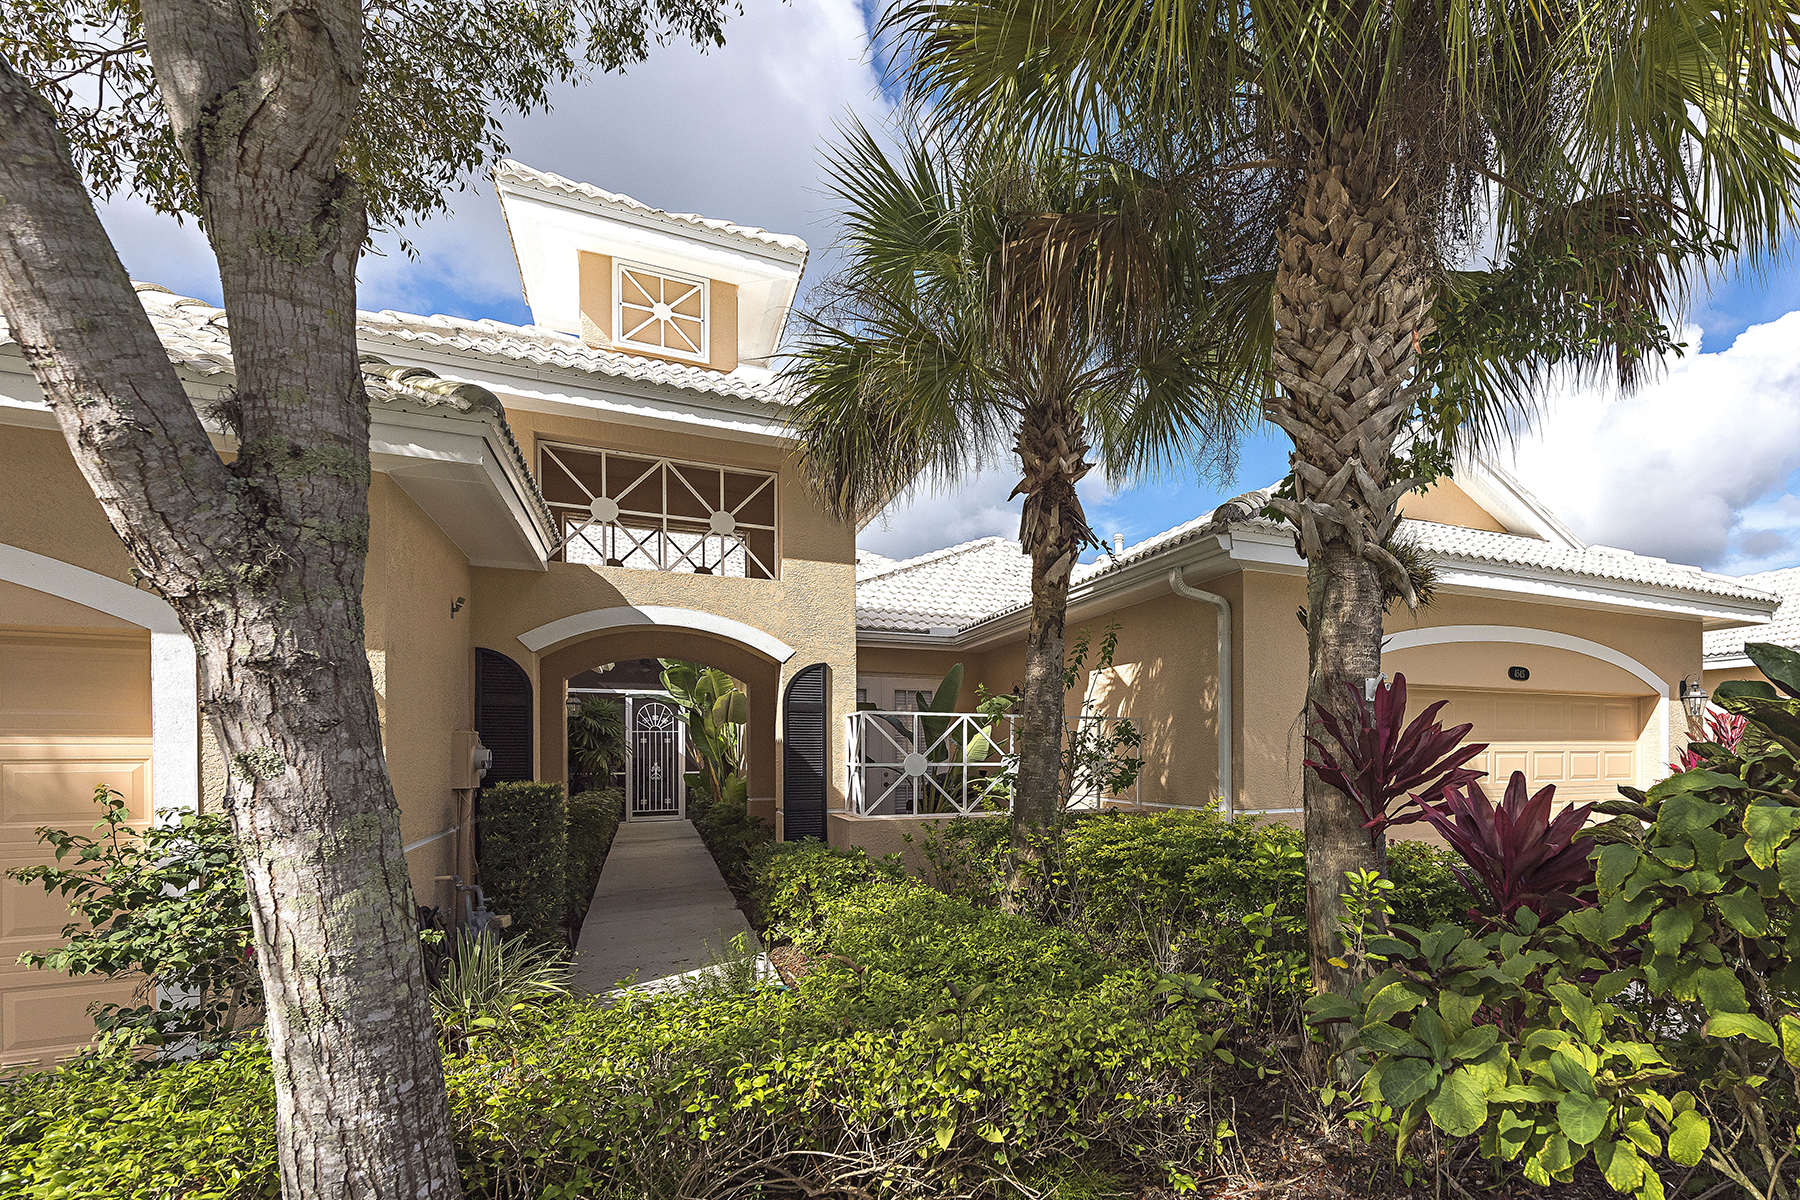 Property For Sale at FIDDLER'S CREEK - CARDINAL COVE